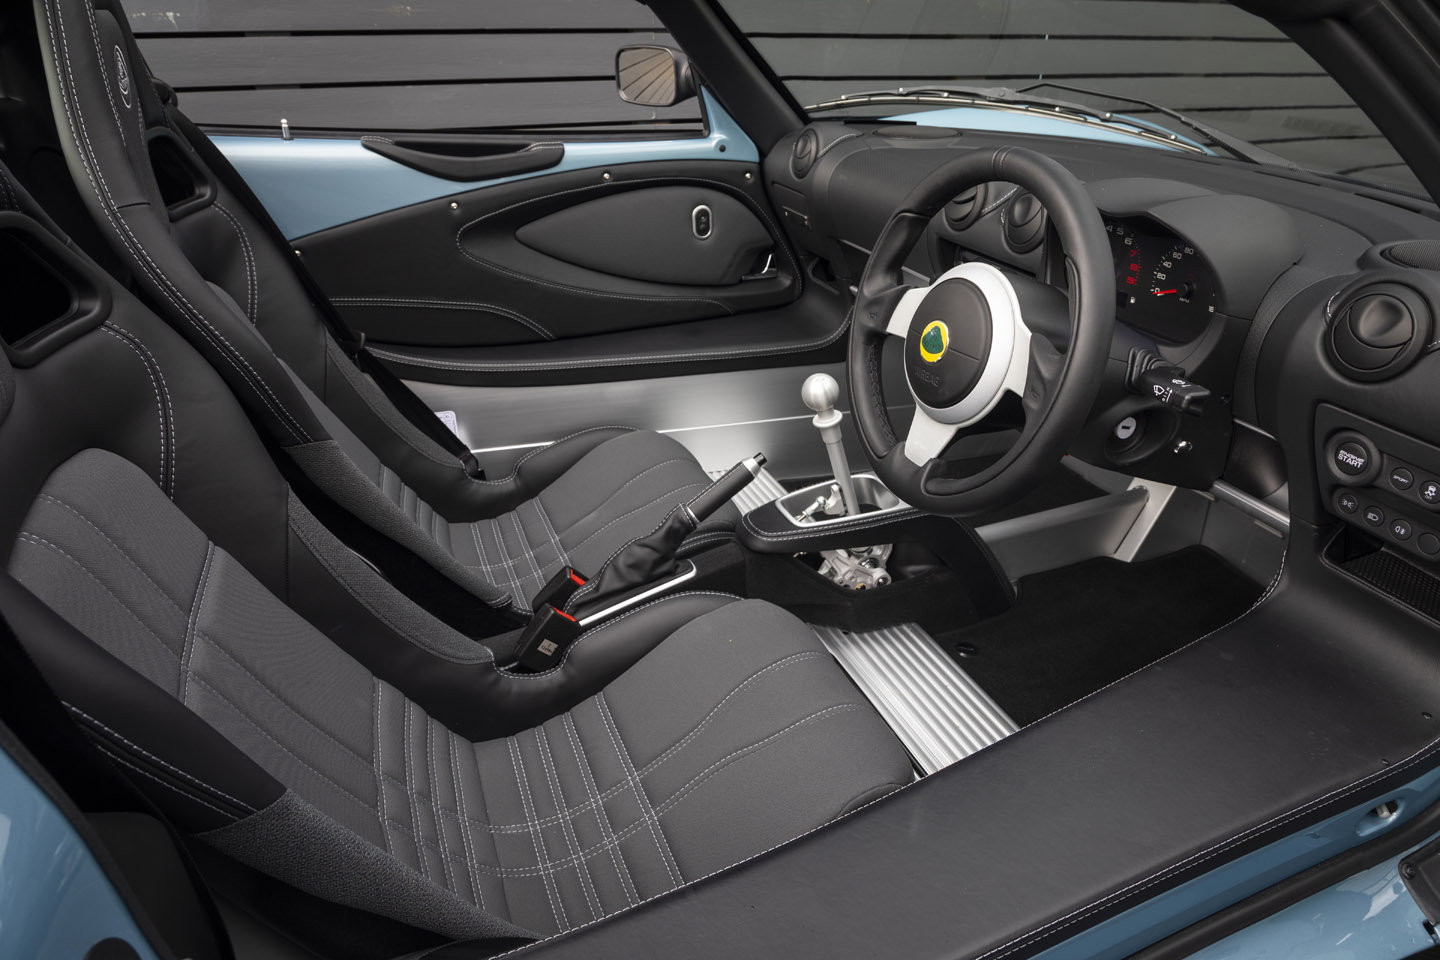 2019 LOTUS ELISE 220 SPORT For Sale (picture 4 of 6)